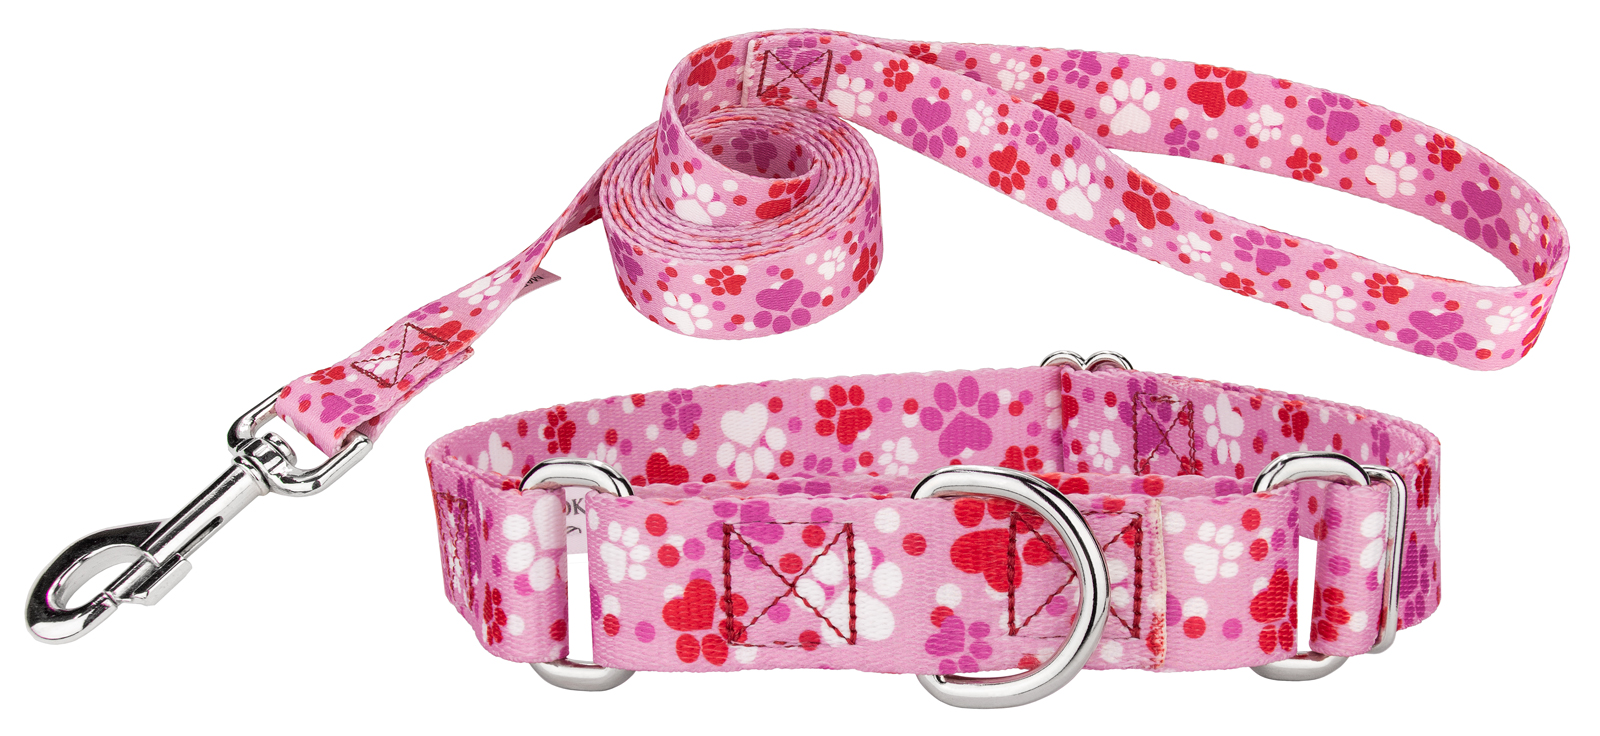 Country Brook Design Puppy Love Martingale Dog Collar & Leash by Country Brook Design